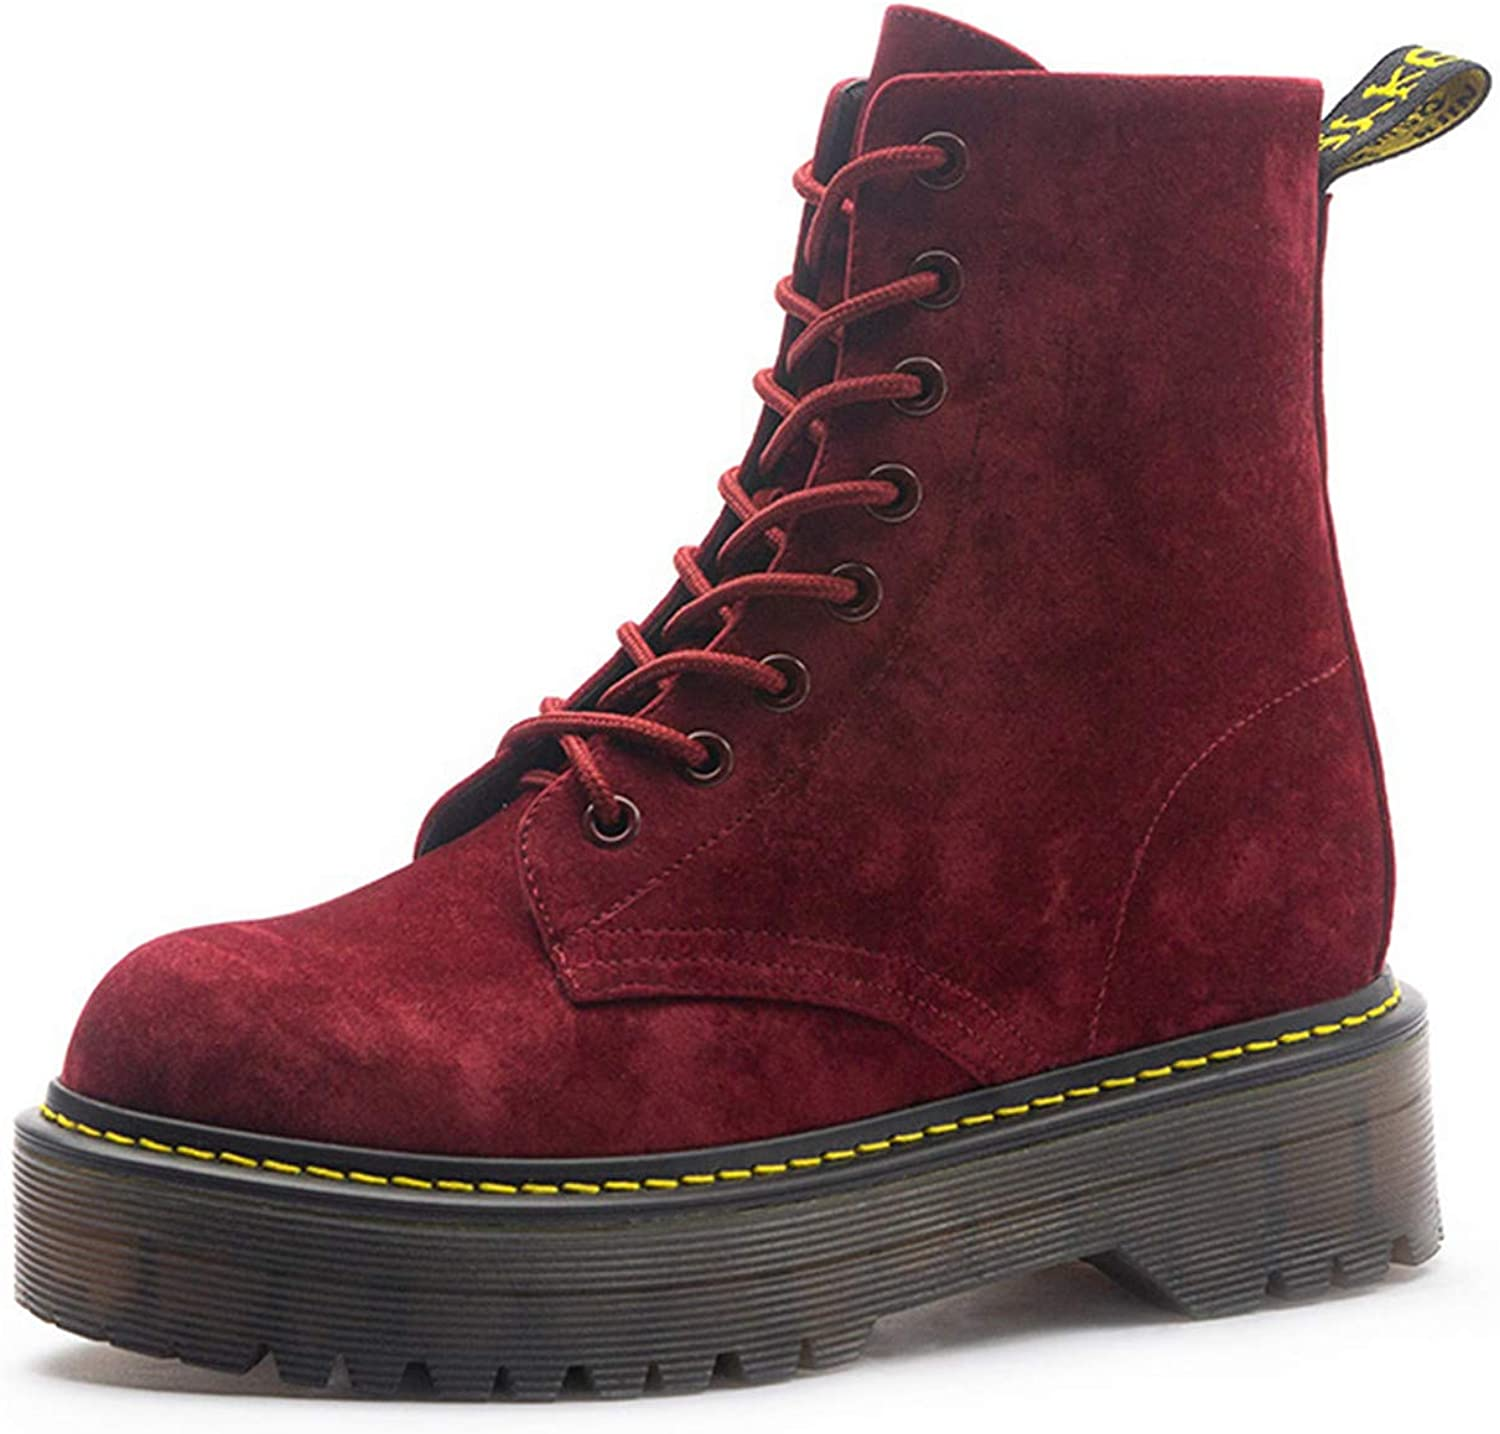 Motorcycle Boots for Women Autumn Round Toe Lace-Up Combat Martin Boots Ladies shoes